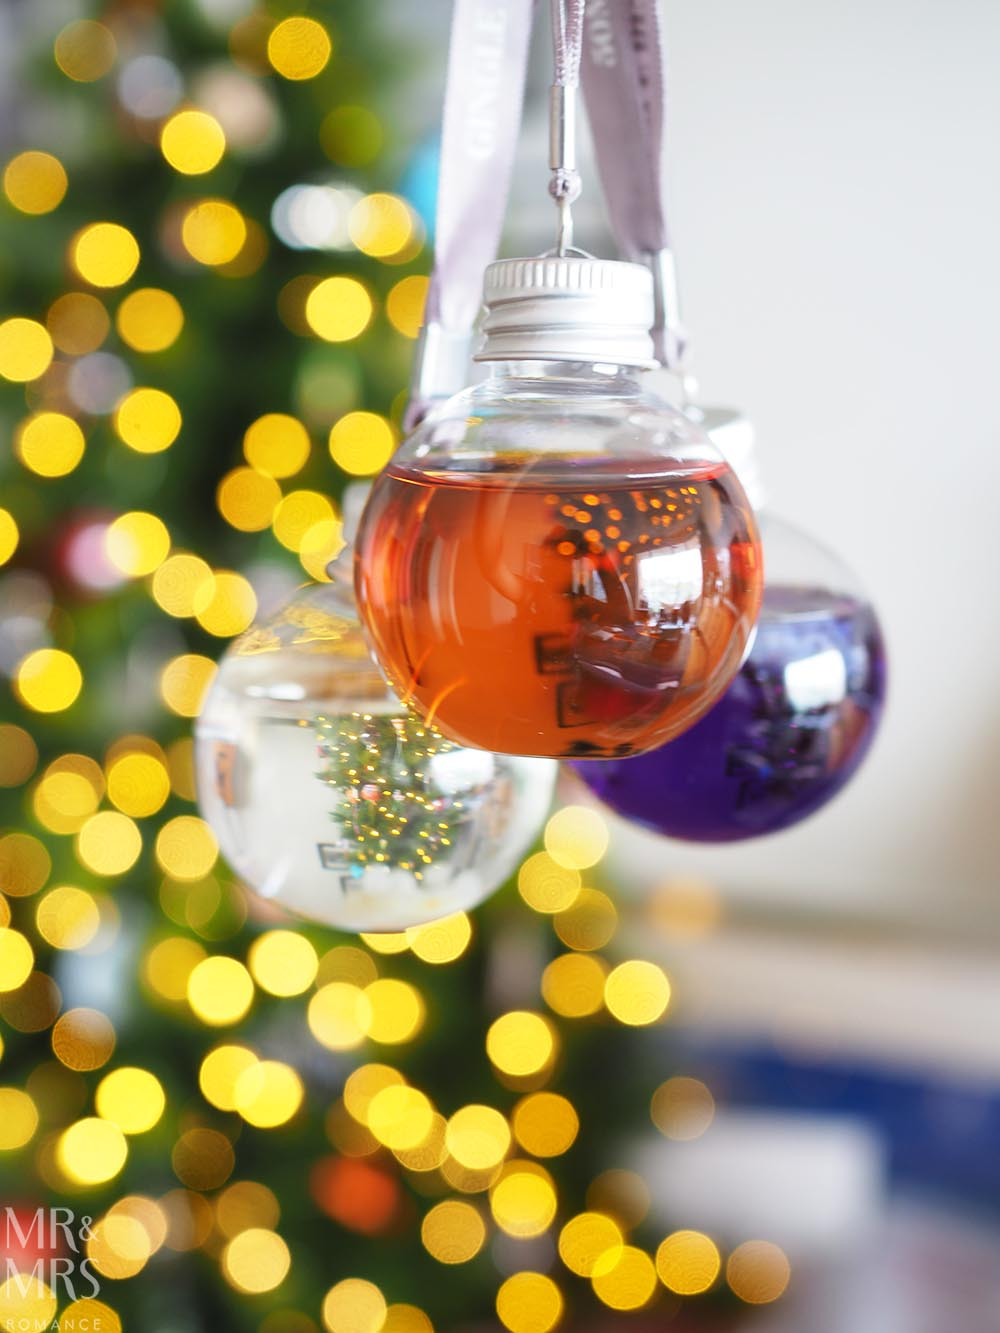 Gingle Bells gin-filled Christmas baubles